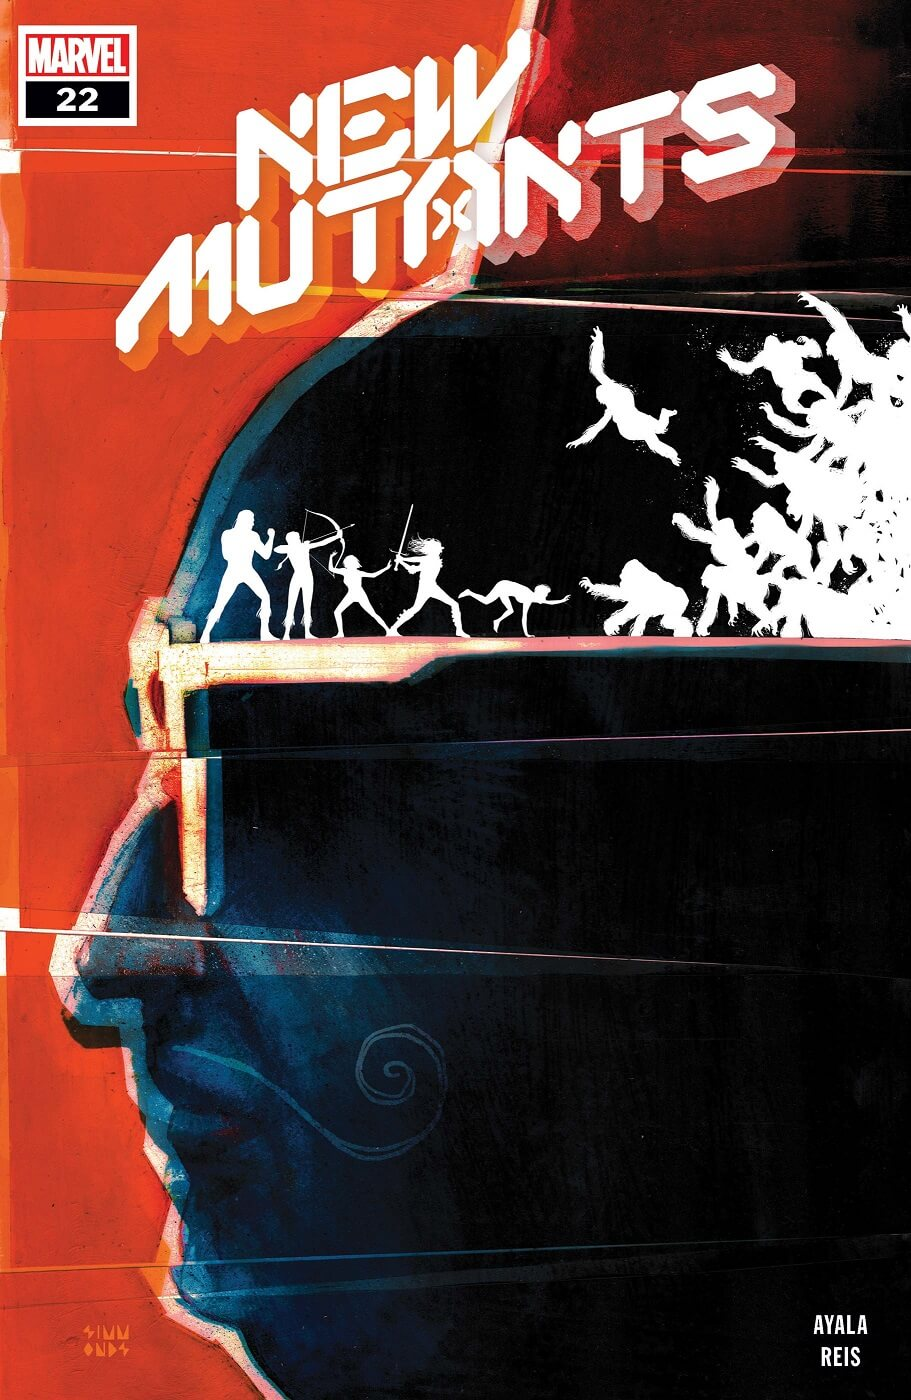 The almost silhouetted profile of the Shadow King on a red background. His head fills the whole cover except for the text New Mutants. In white silhouette, standing on the ear of his sunglasses (also white), the New Mutants fight an attacking horde of primates.